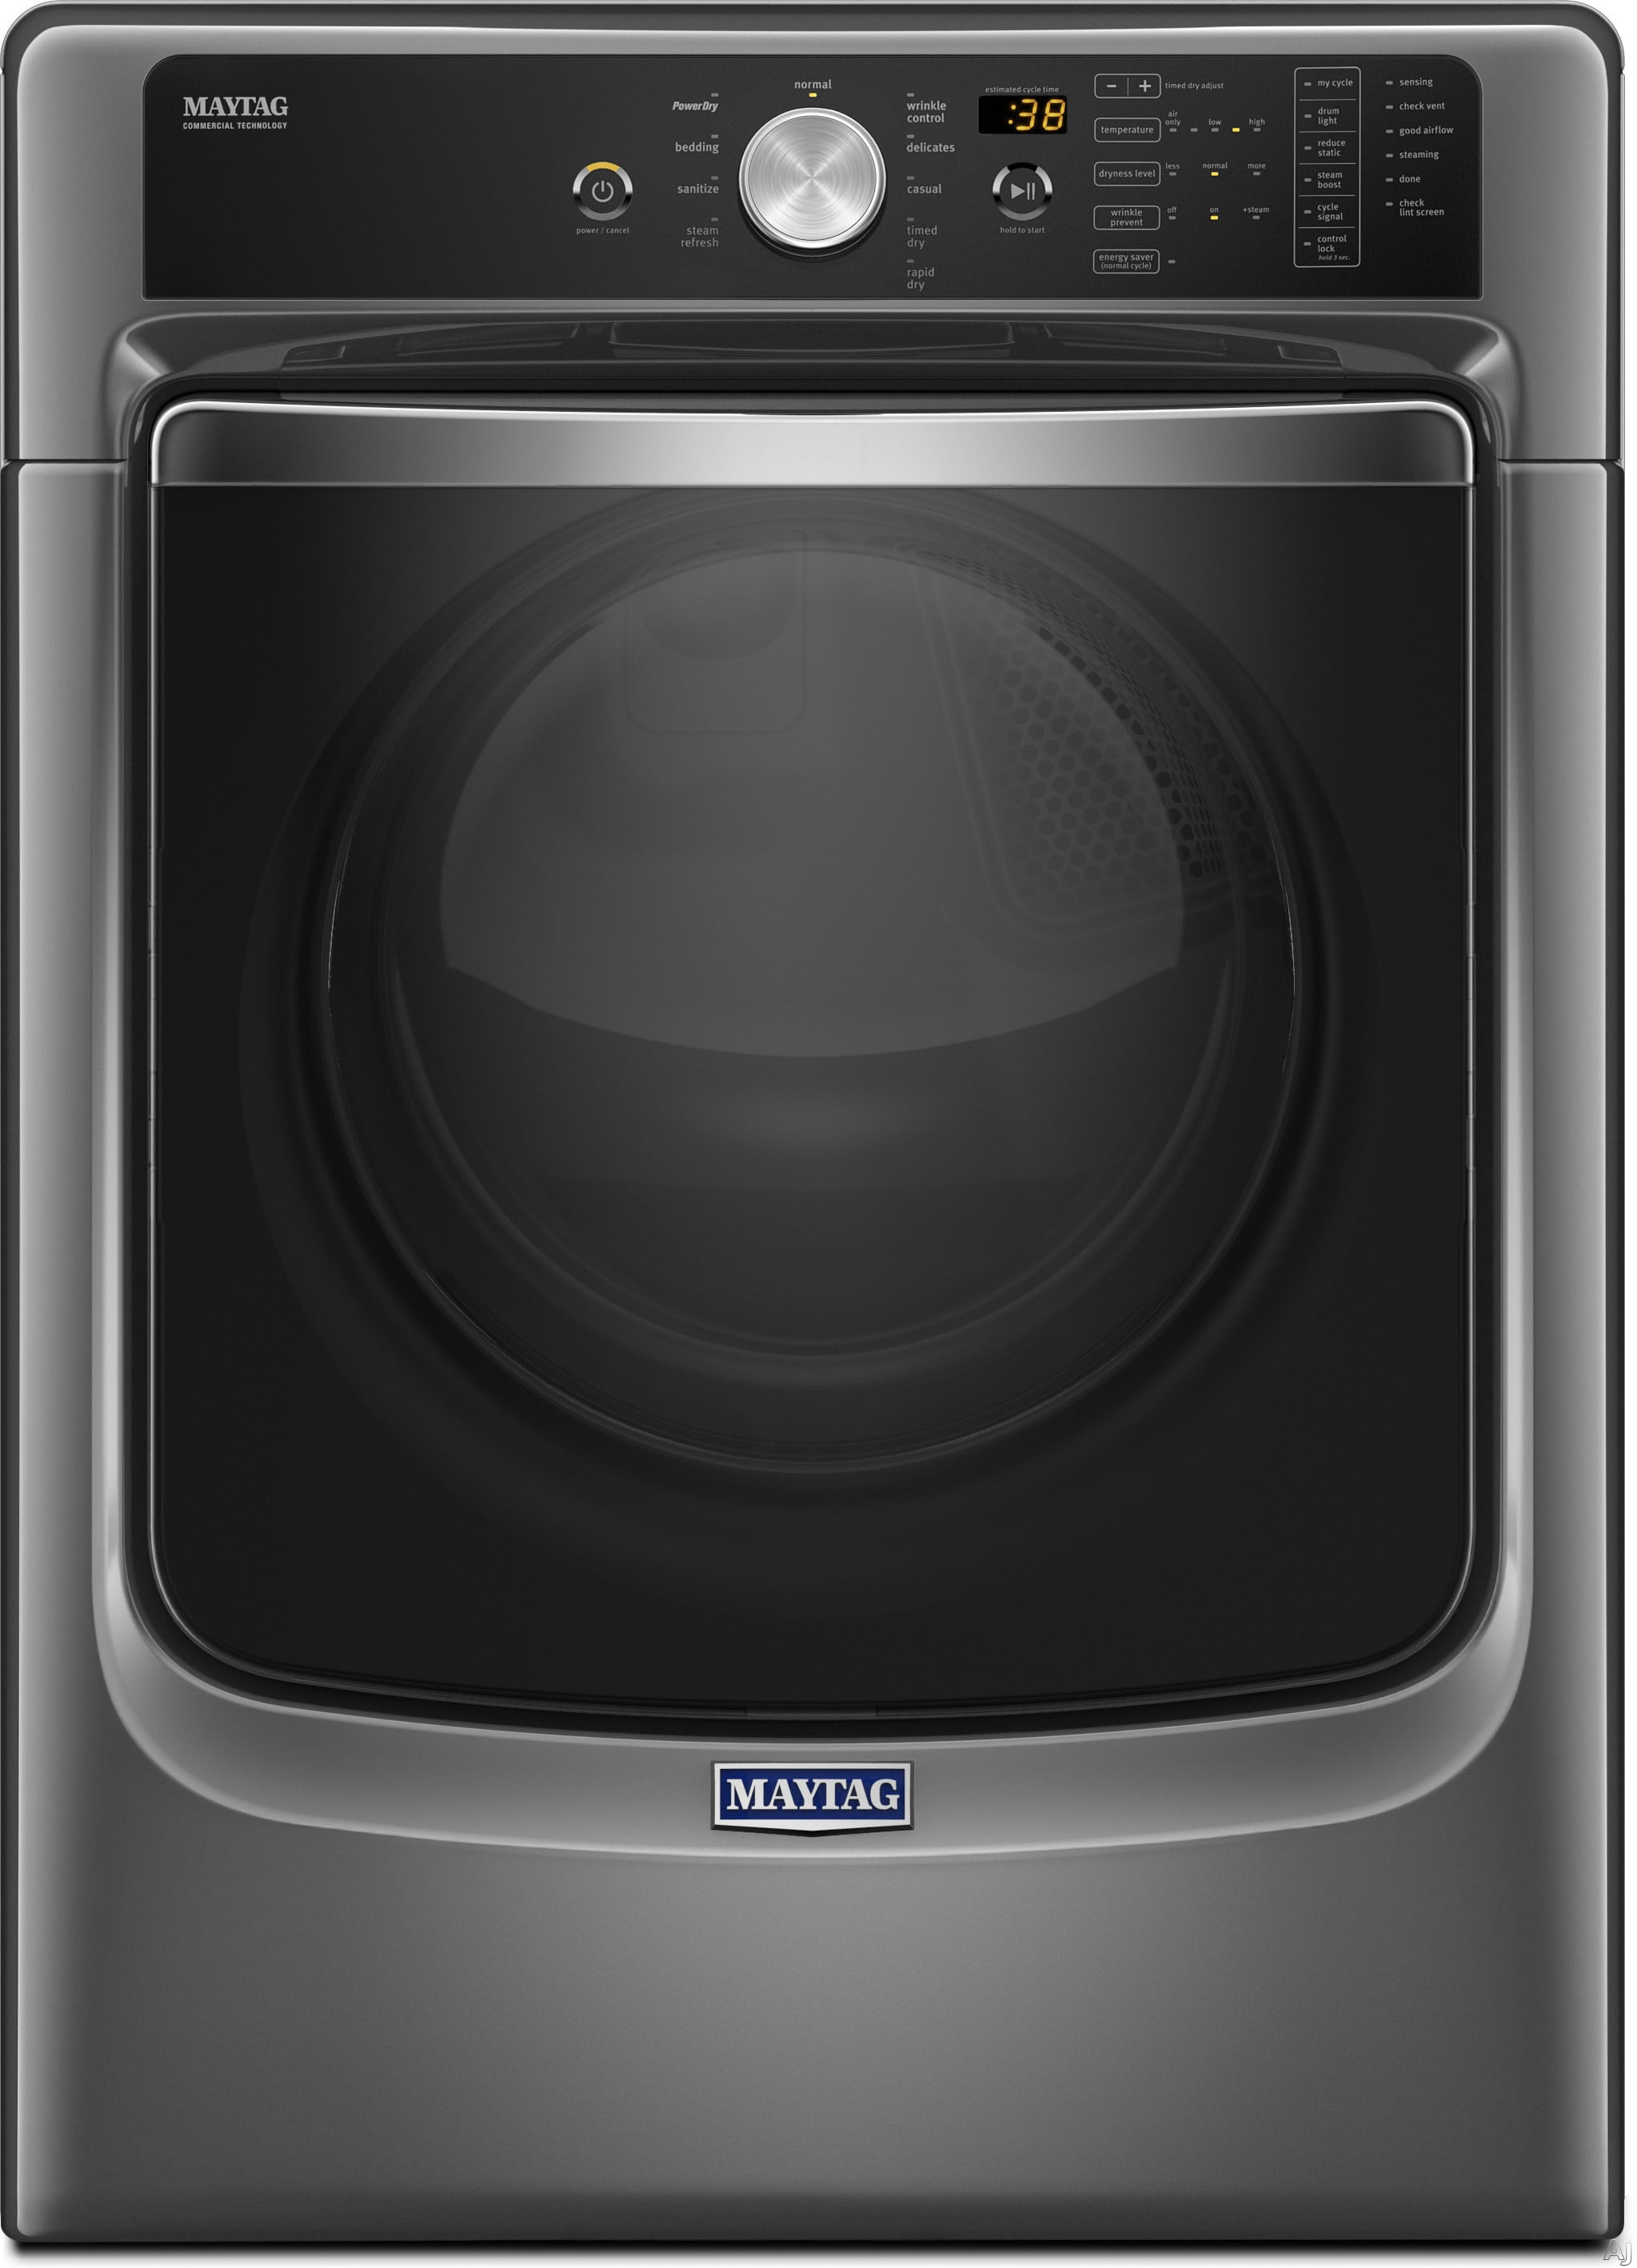 Maytag med8200fc 27 inch 7 4 cu ft electric dryer with - Maytag whirlpool ...